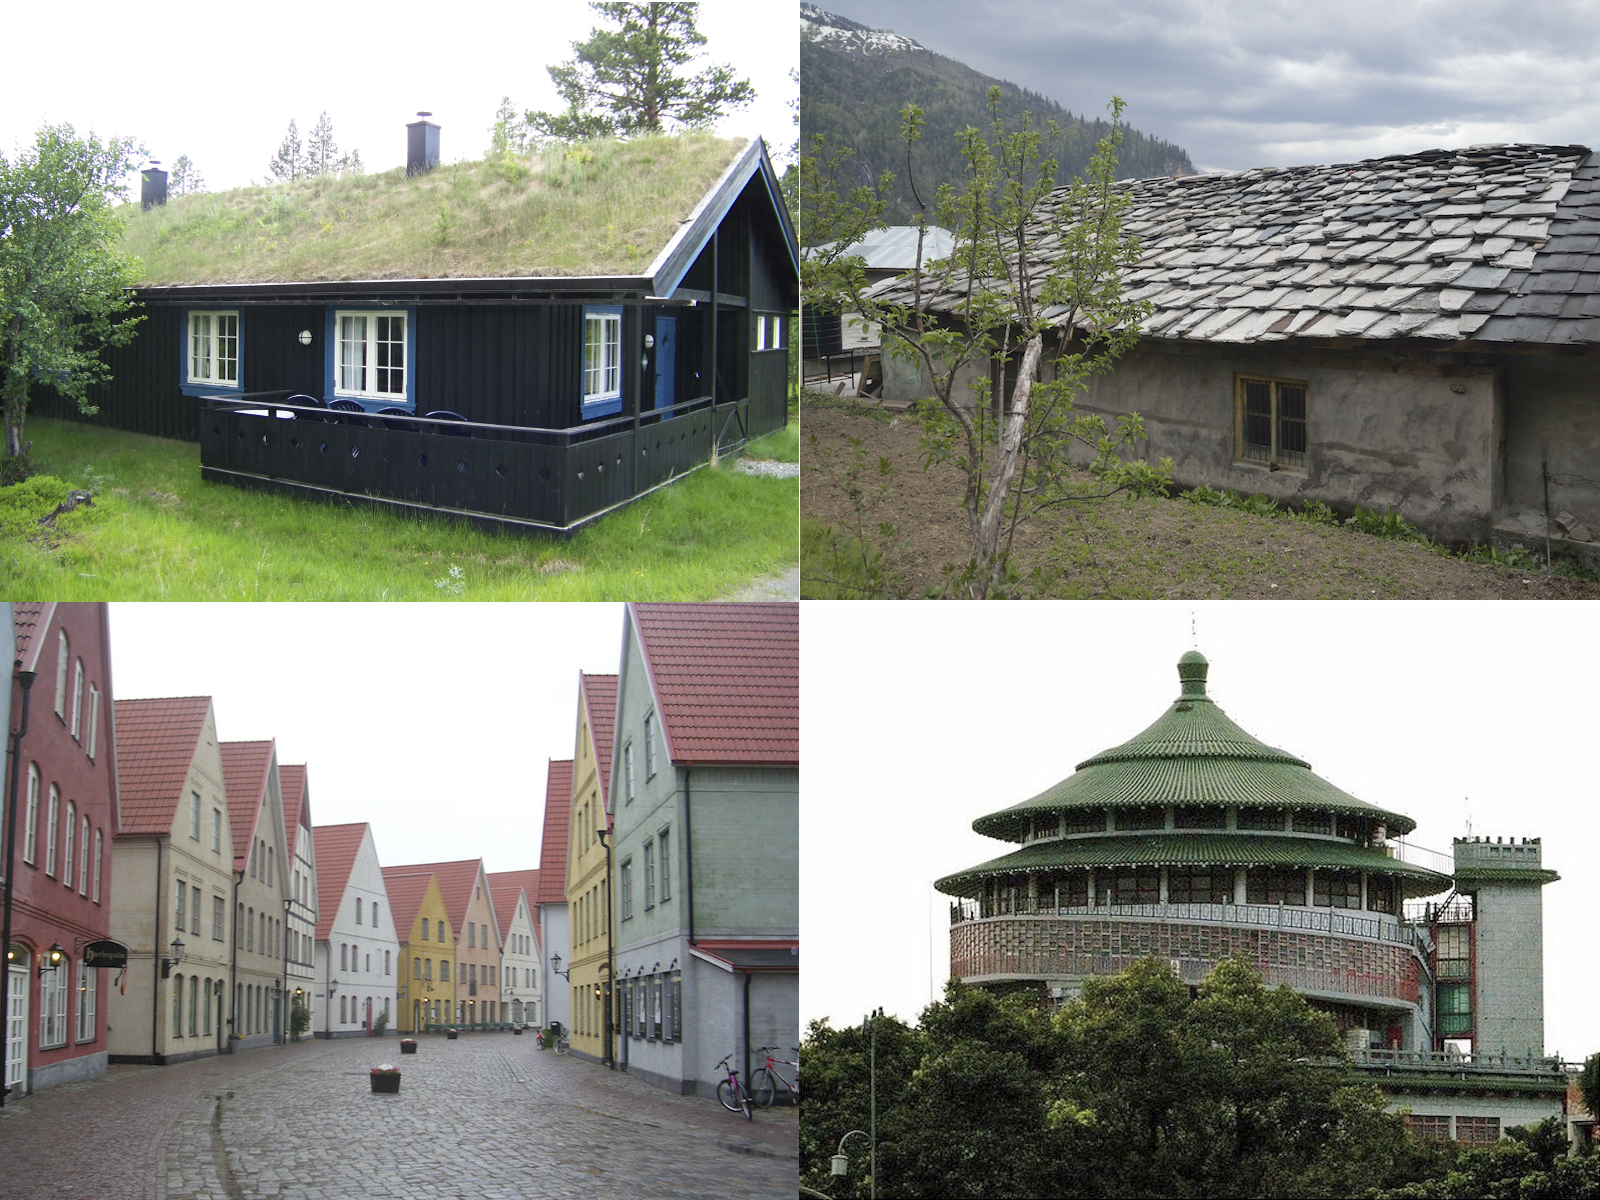 <p>Fig. 4. <em>Clockwise from top left</em>:&nbsp;A living grass roof in Norway.&nbsp;A stone roof in India.&nbsp;A round roof in Taiwan. Steep, tile roofs in Northern Europe.</p>